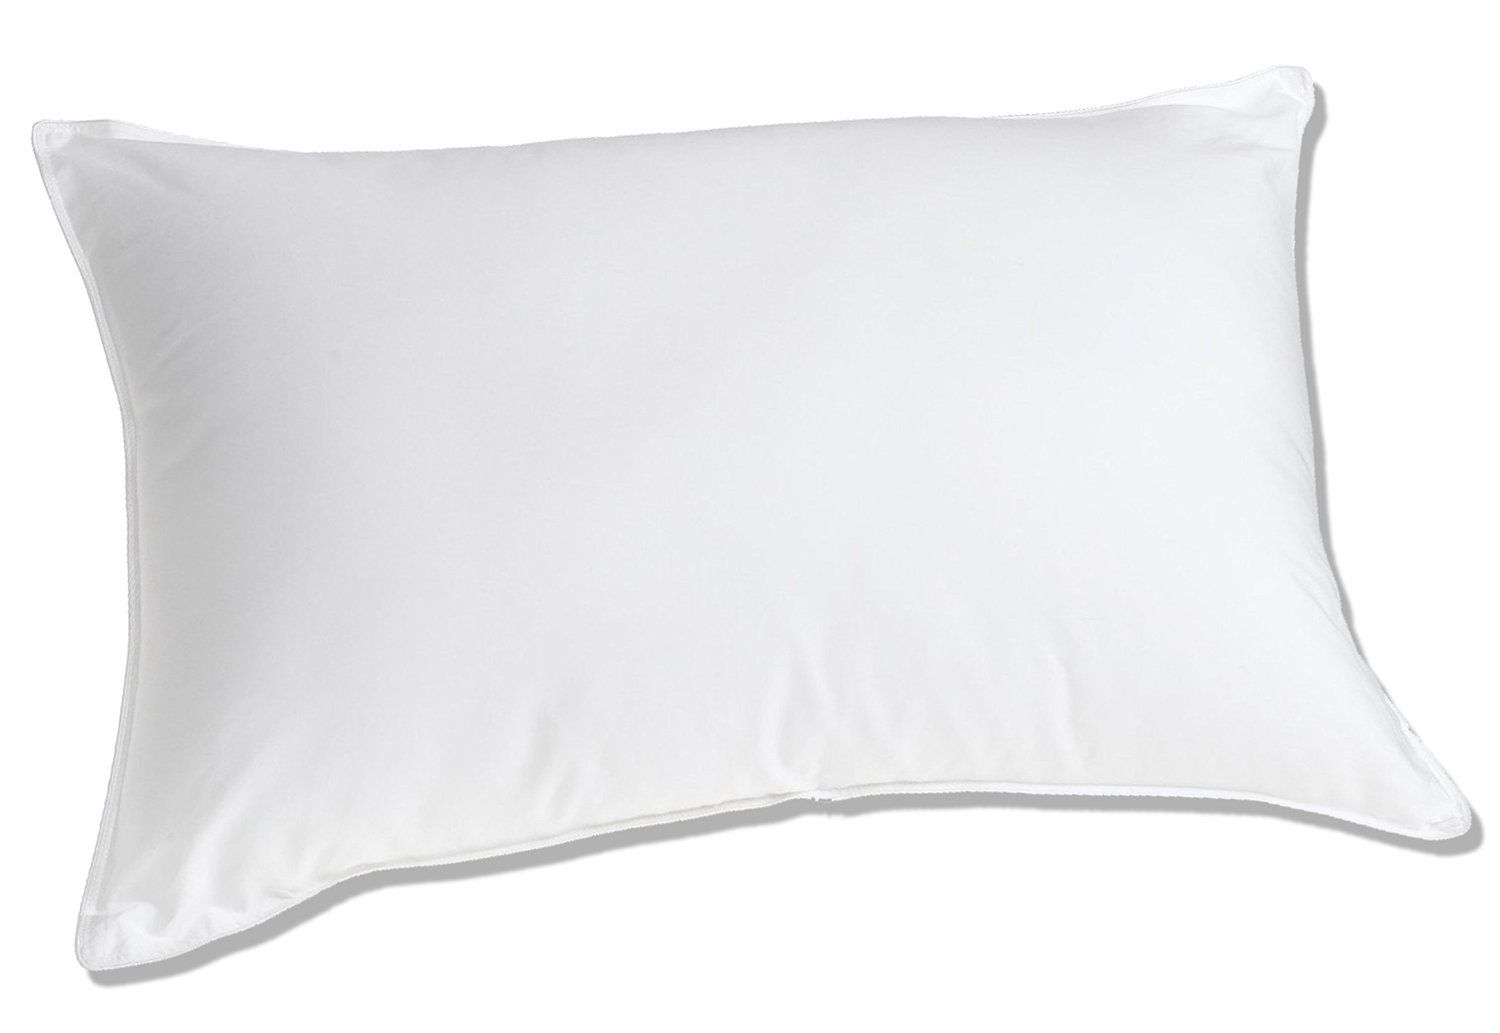 Cool Top 10 Goose Down Pillows Reviews Best Models For Your Comfort Side Sleeper Pillow Best Down Pillows Goose Down Pillows